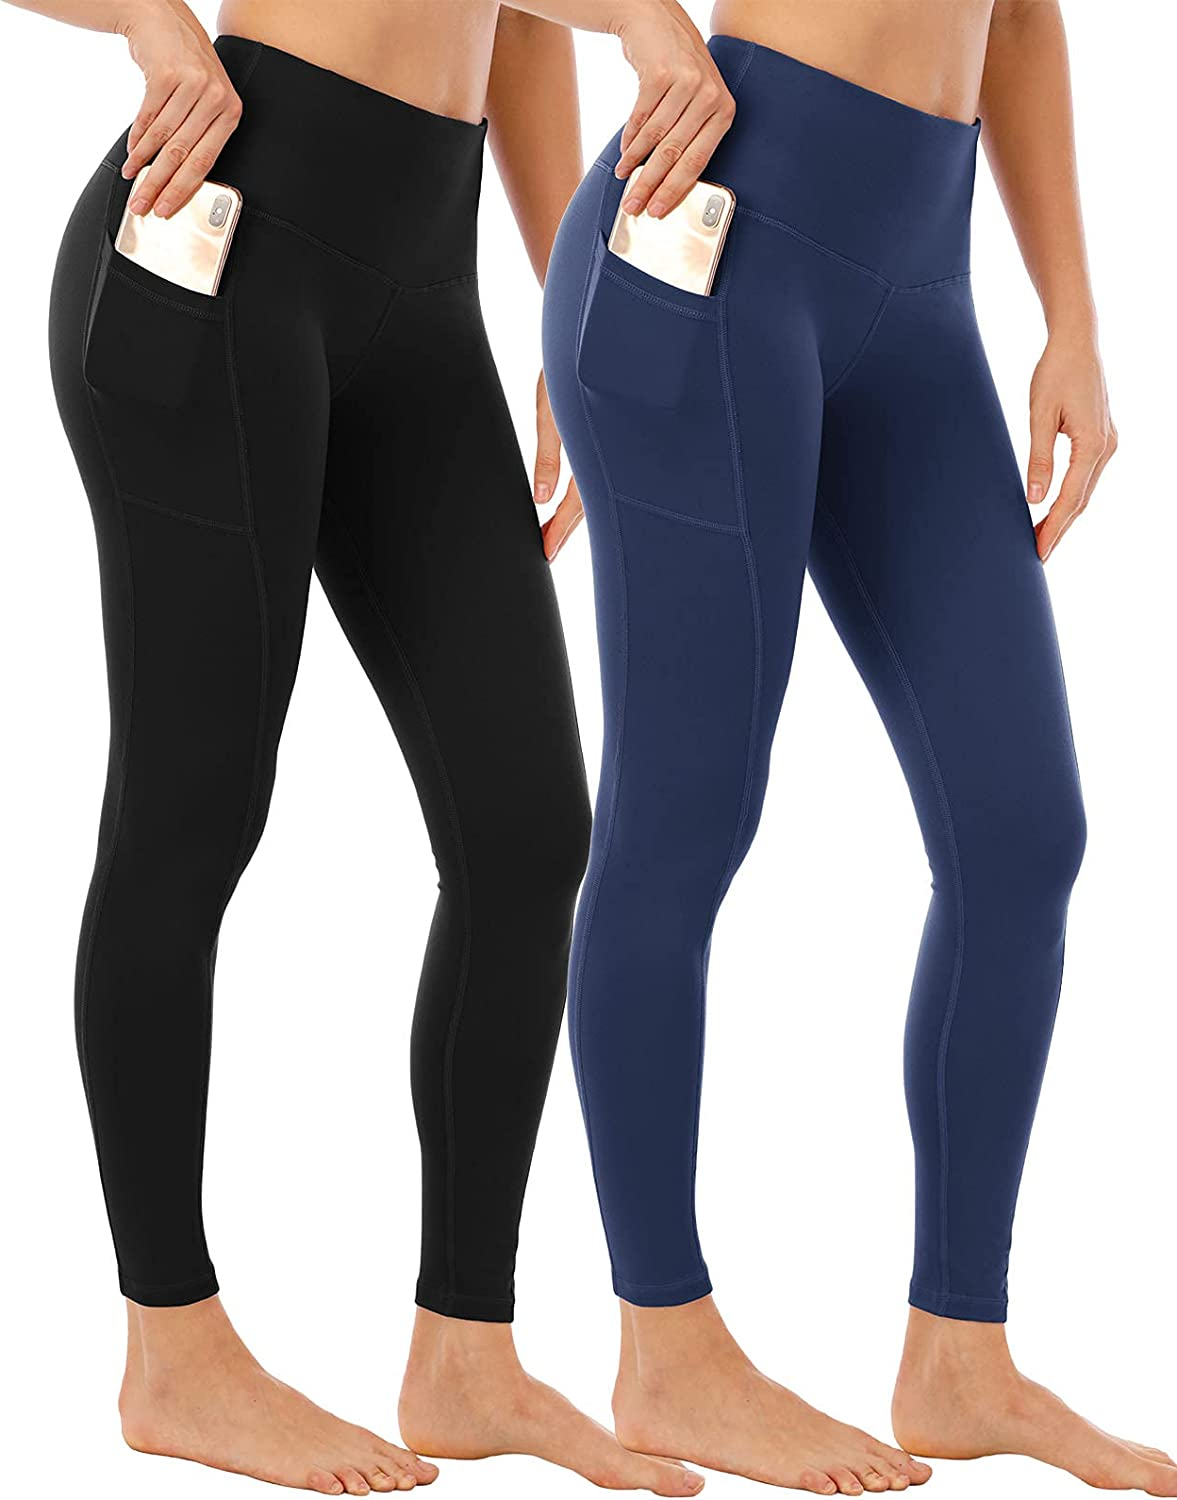 NORMOV Japan's largest assortment Womens Leggings with Spasm price Pocket Waist High Control Work Tummy